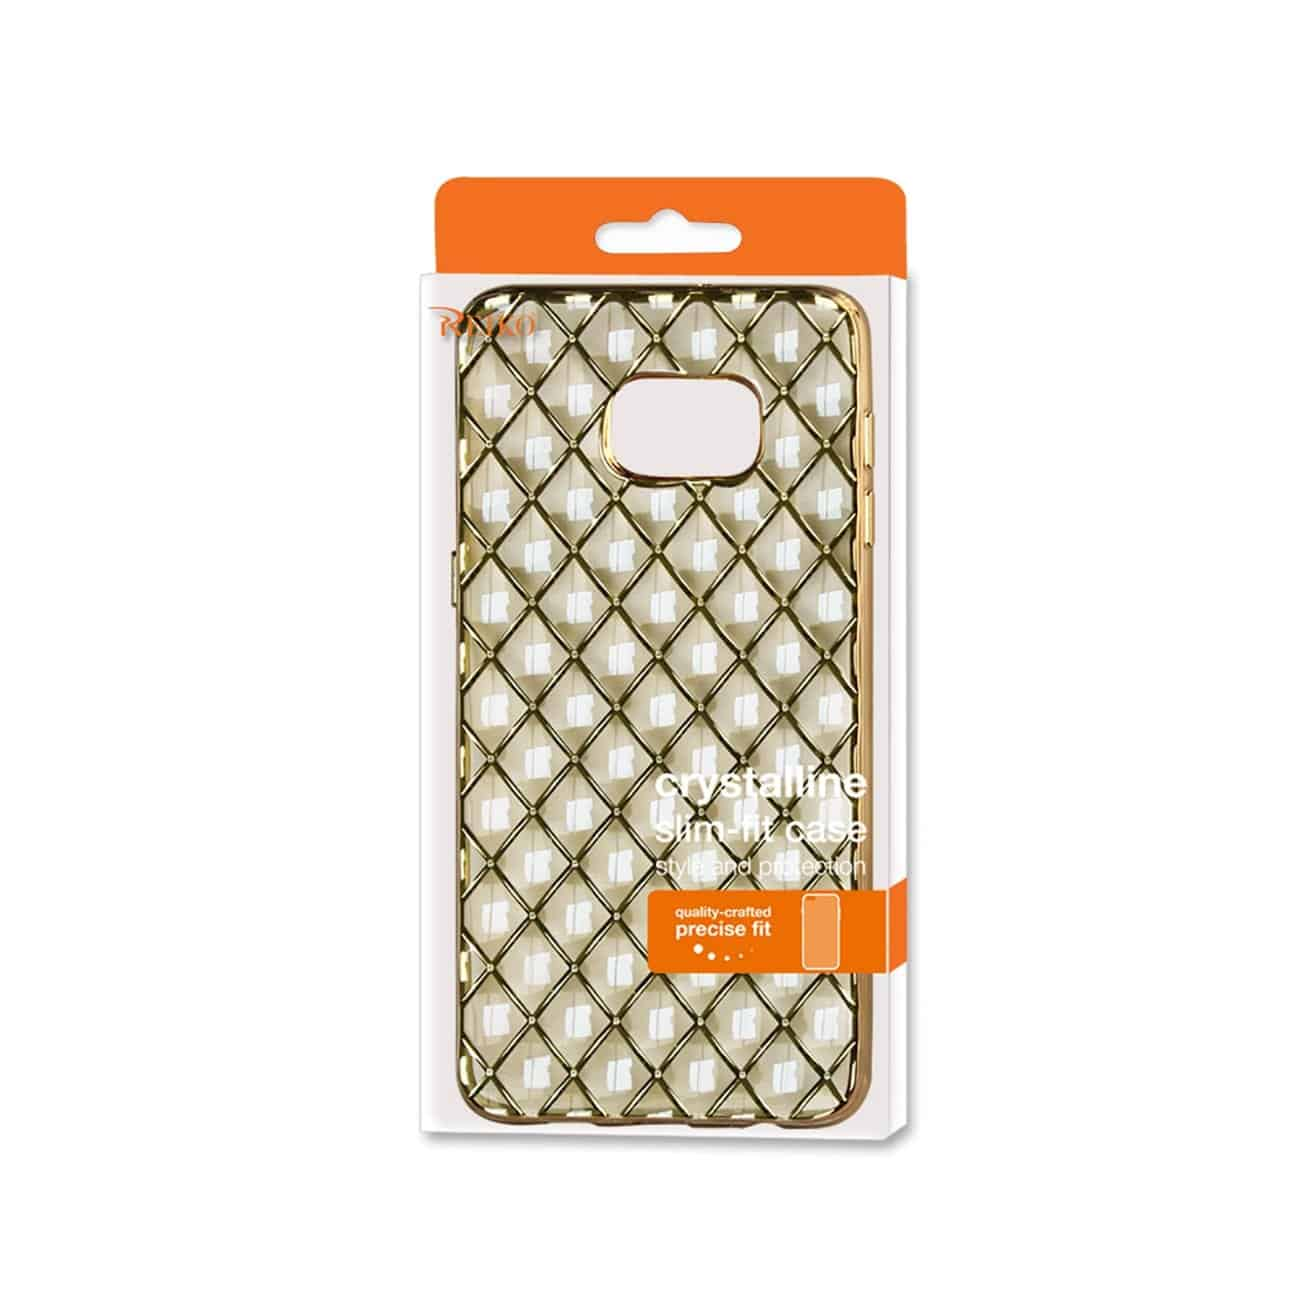 SAMSUNG GALAXY S6 EDGE PLUS FLEXIBLE 3D RHOMBUS PATTERN TPU CASE WITH SHINY FRAME IN GOLD